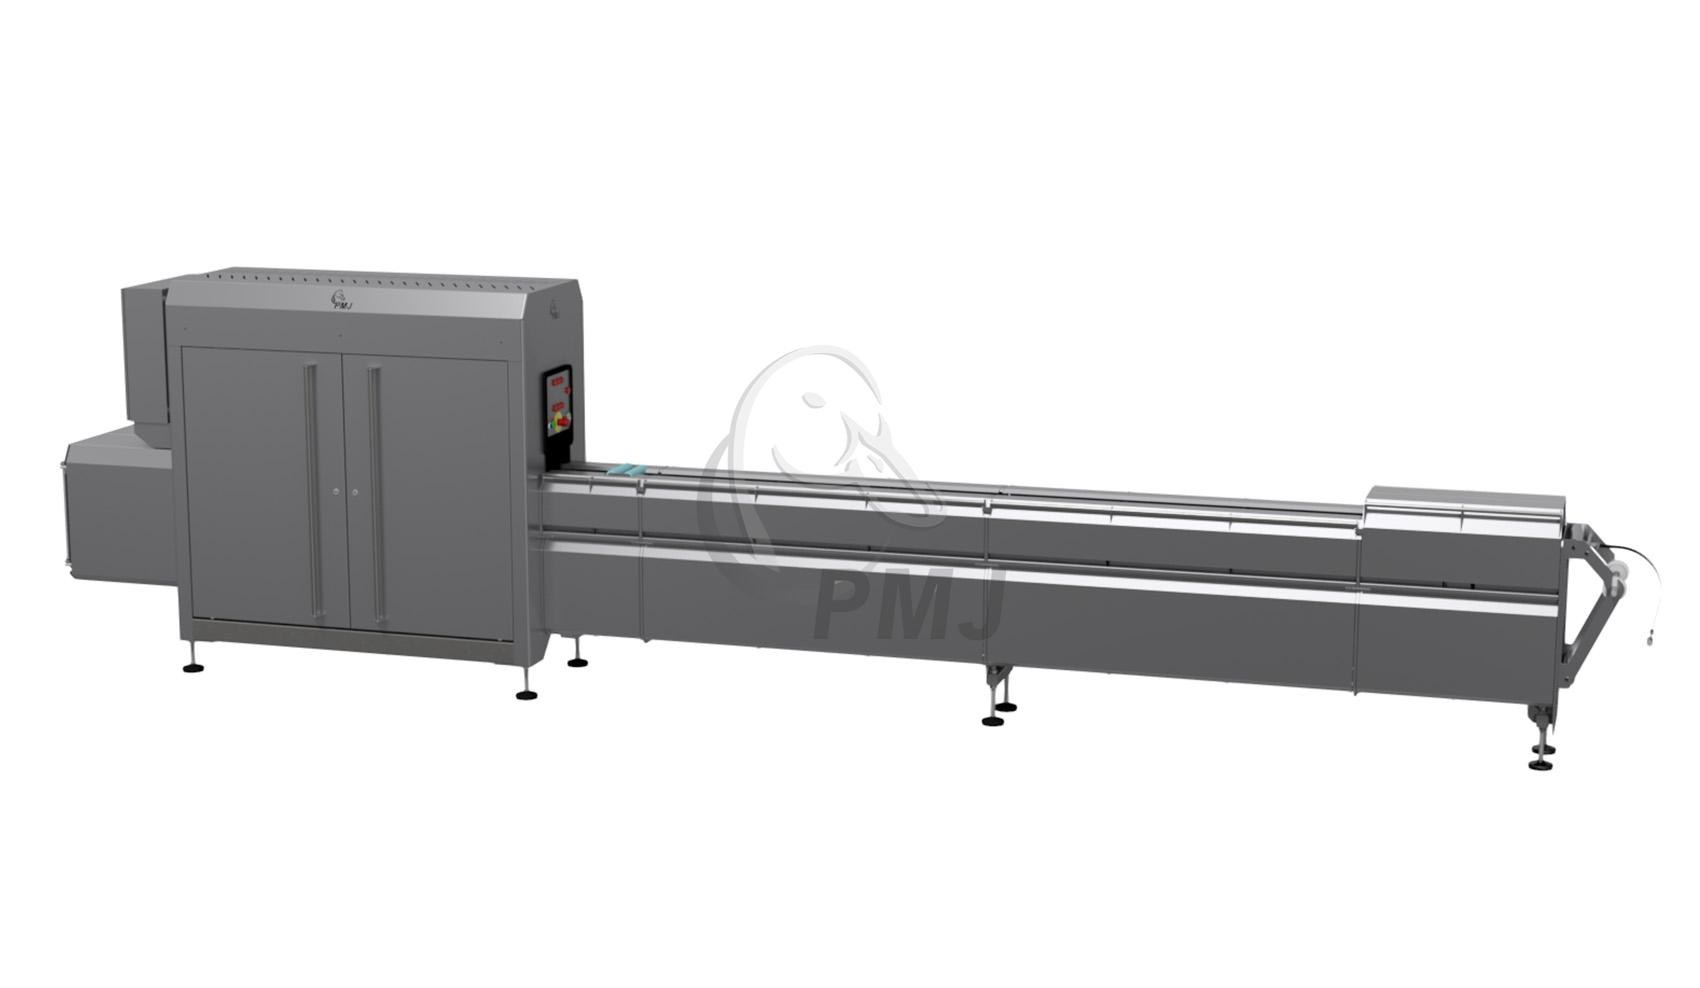 Giblet pack bagger - Grading and packing